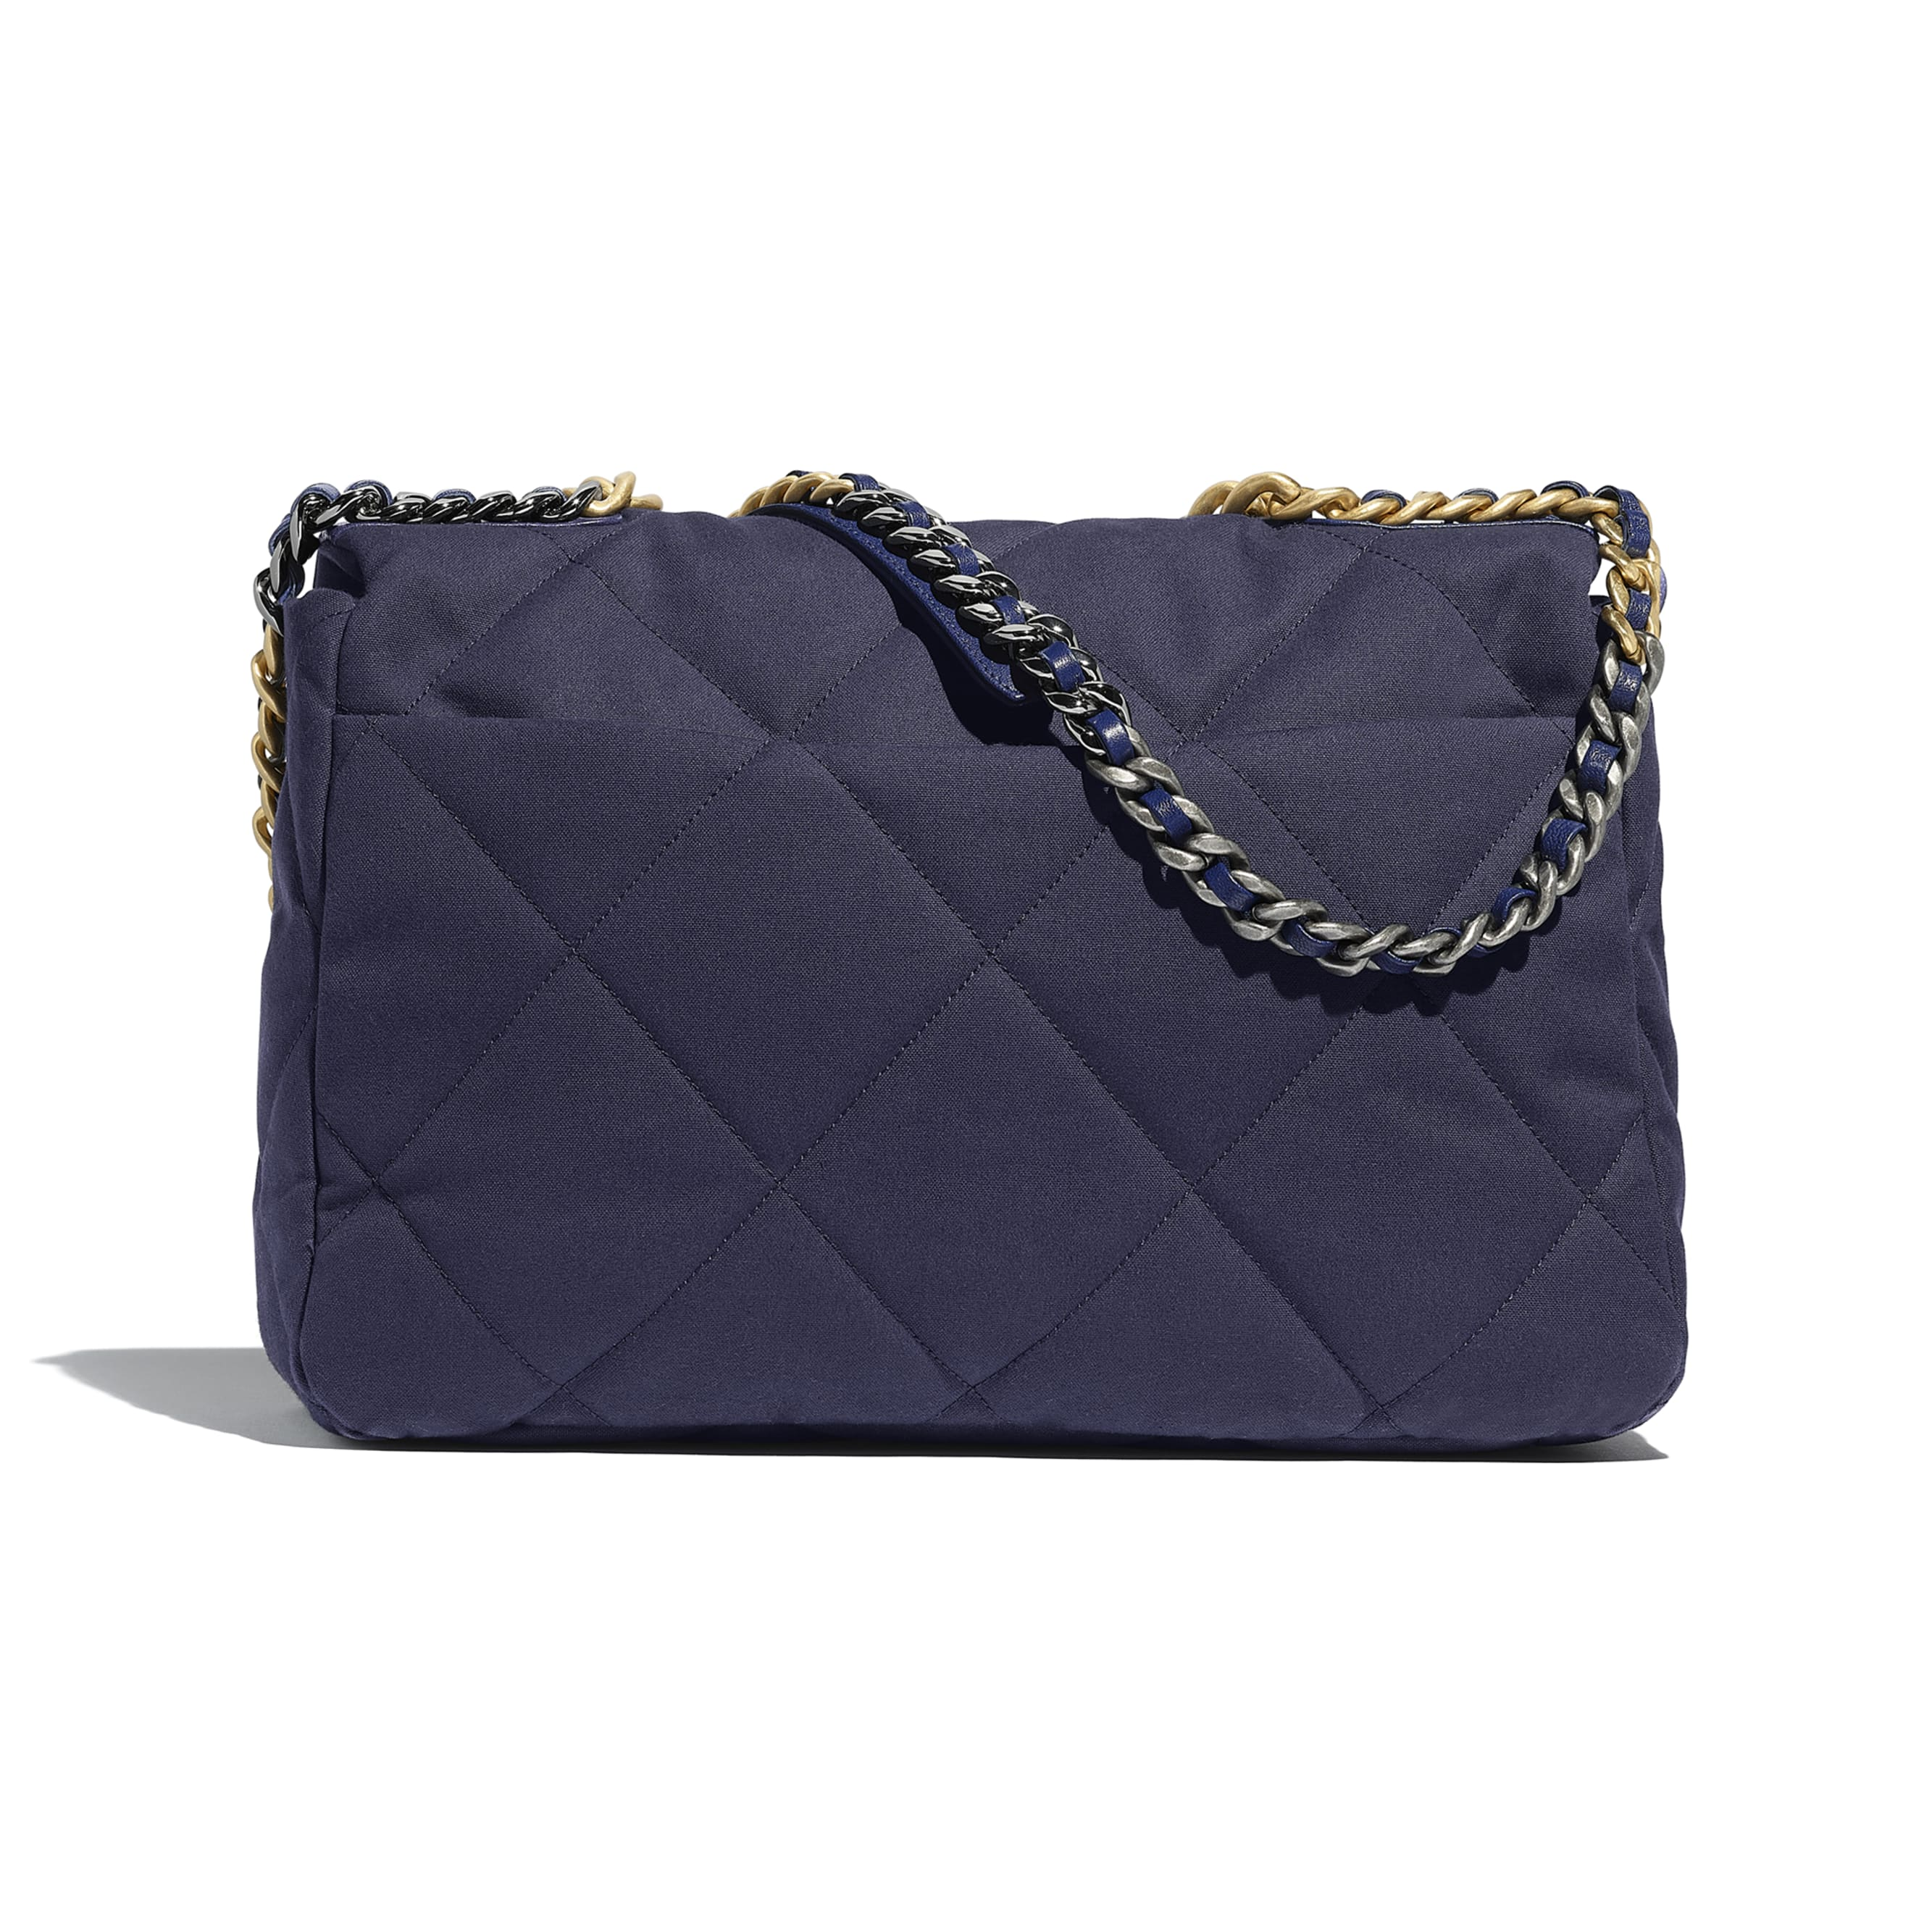 CHANEL 19 Maxi Flap Bag - Navy Blue - Cotton Canvas, Calfskin, Gold-Tone, Silver-Tone & Ruthenium-Finish Metal - Alternative view - see standard sized version